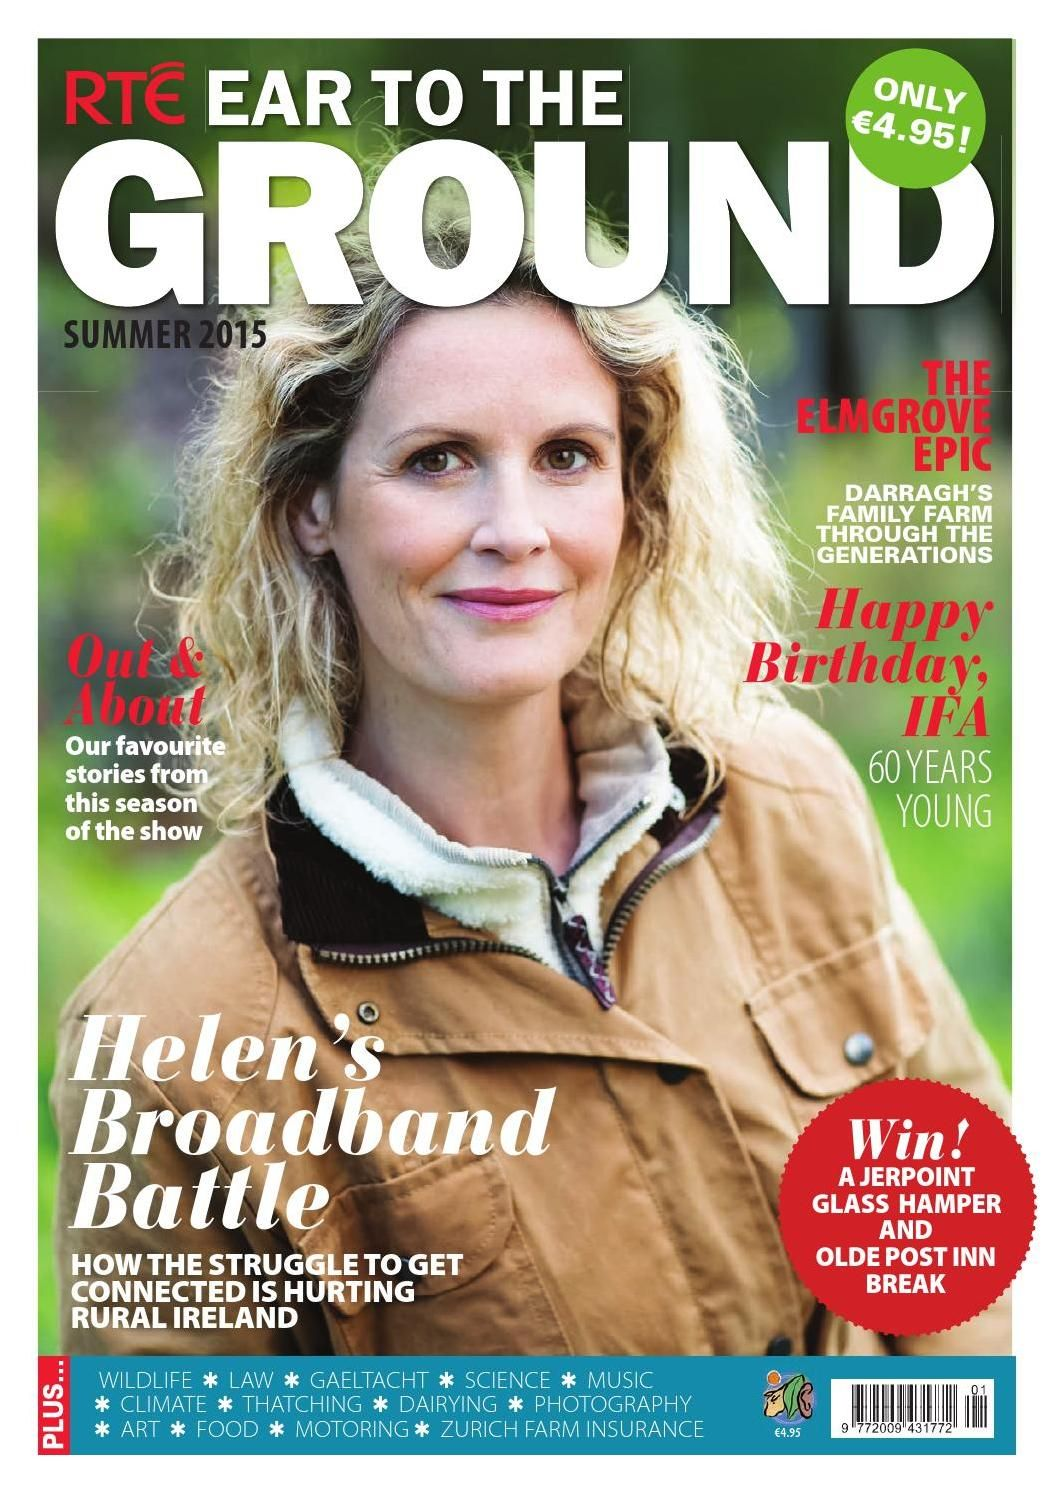 Ear To The Ground Summer 2015 Summer 2015 Magazine Cover Design Summer